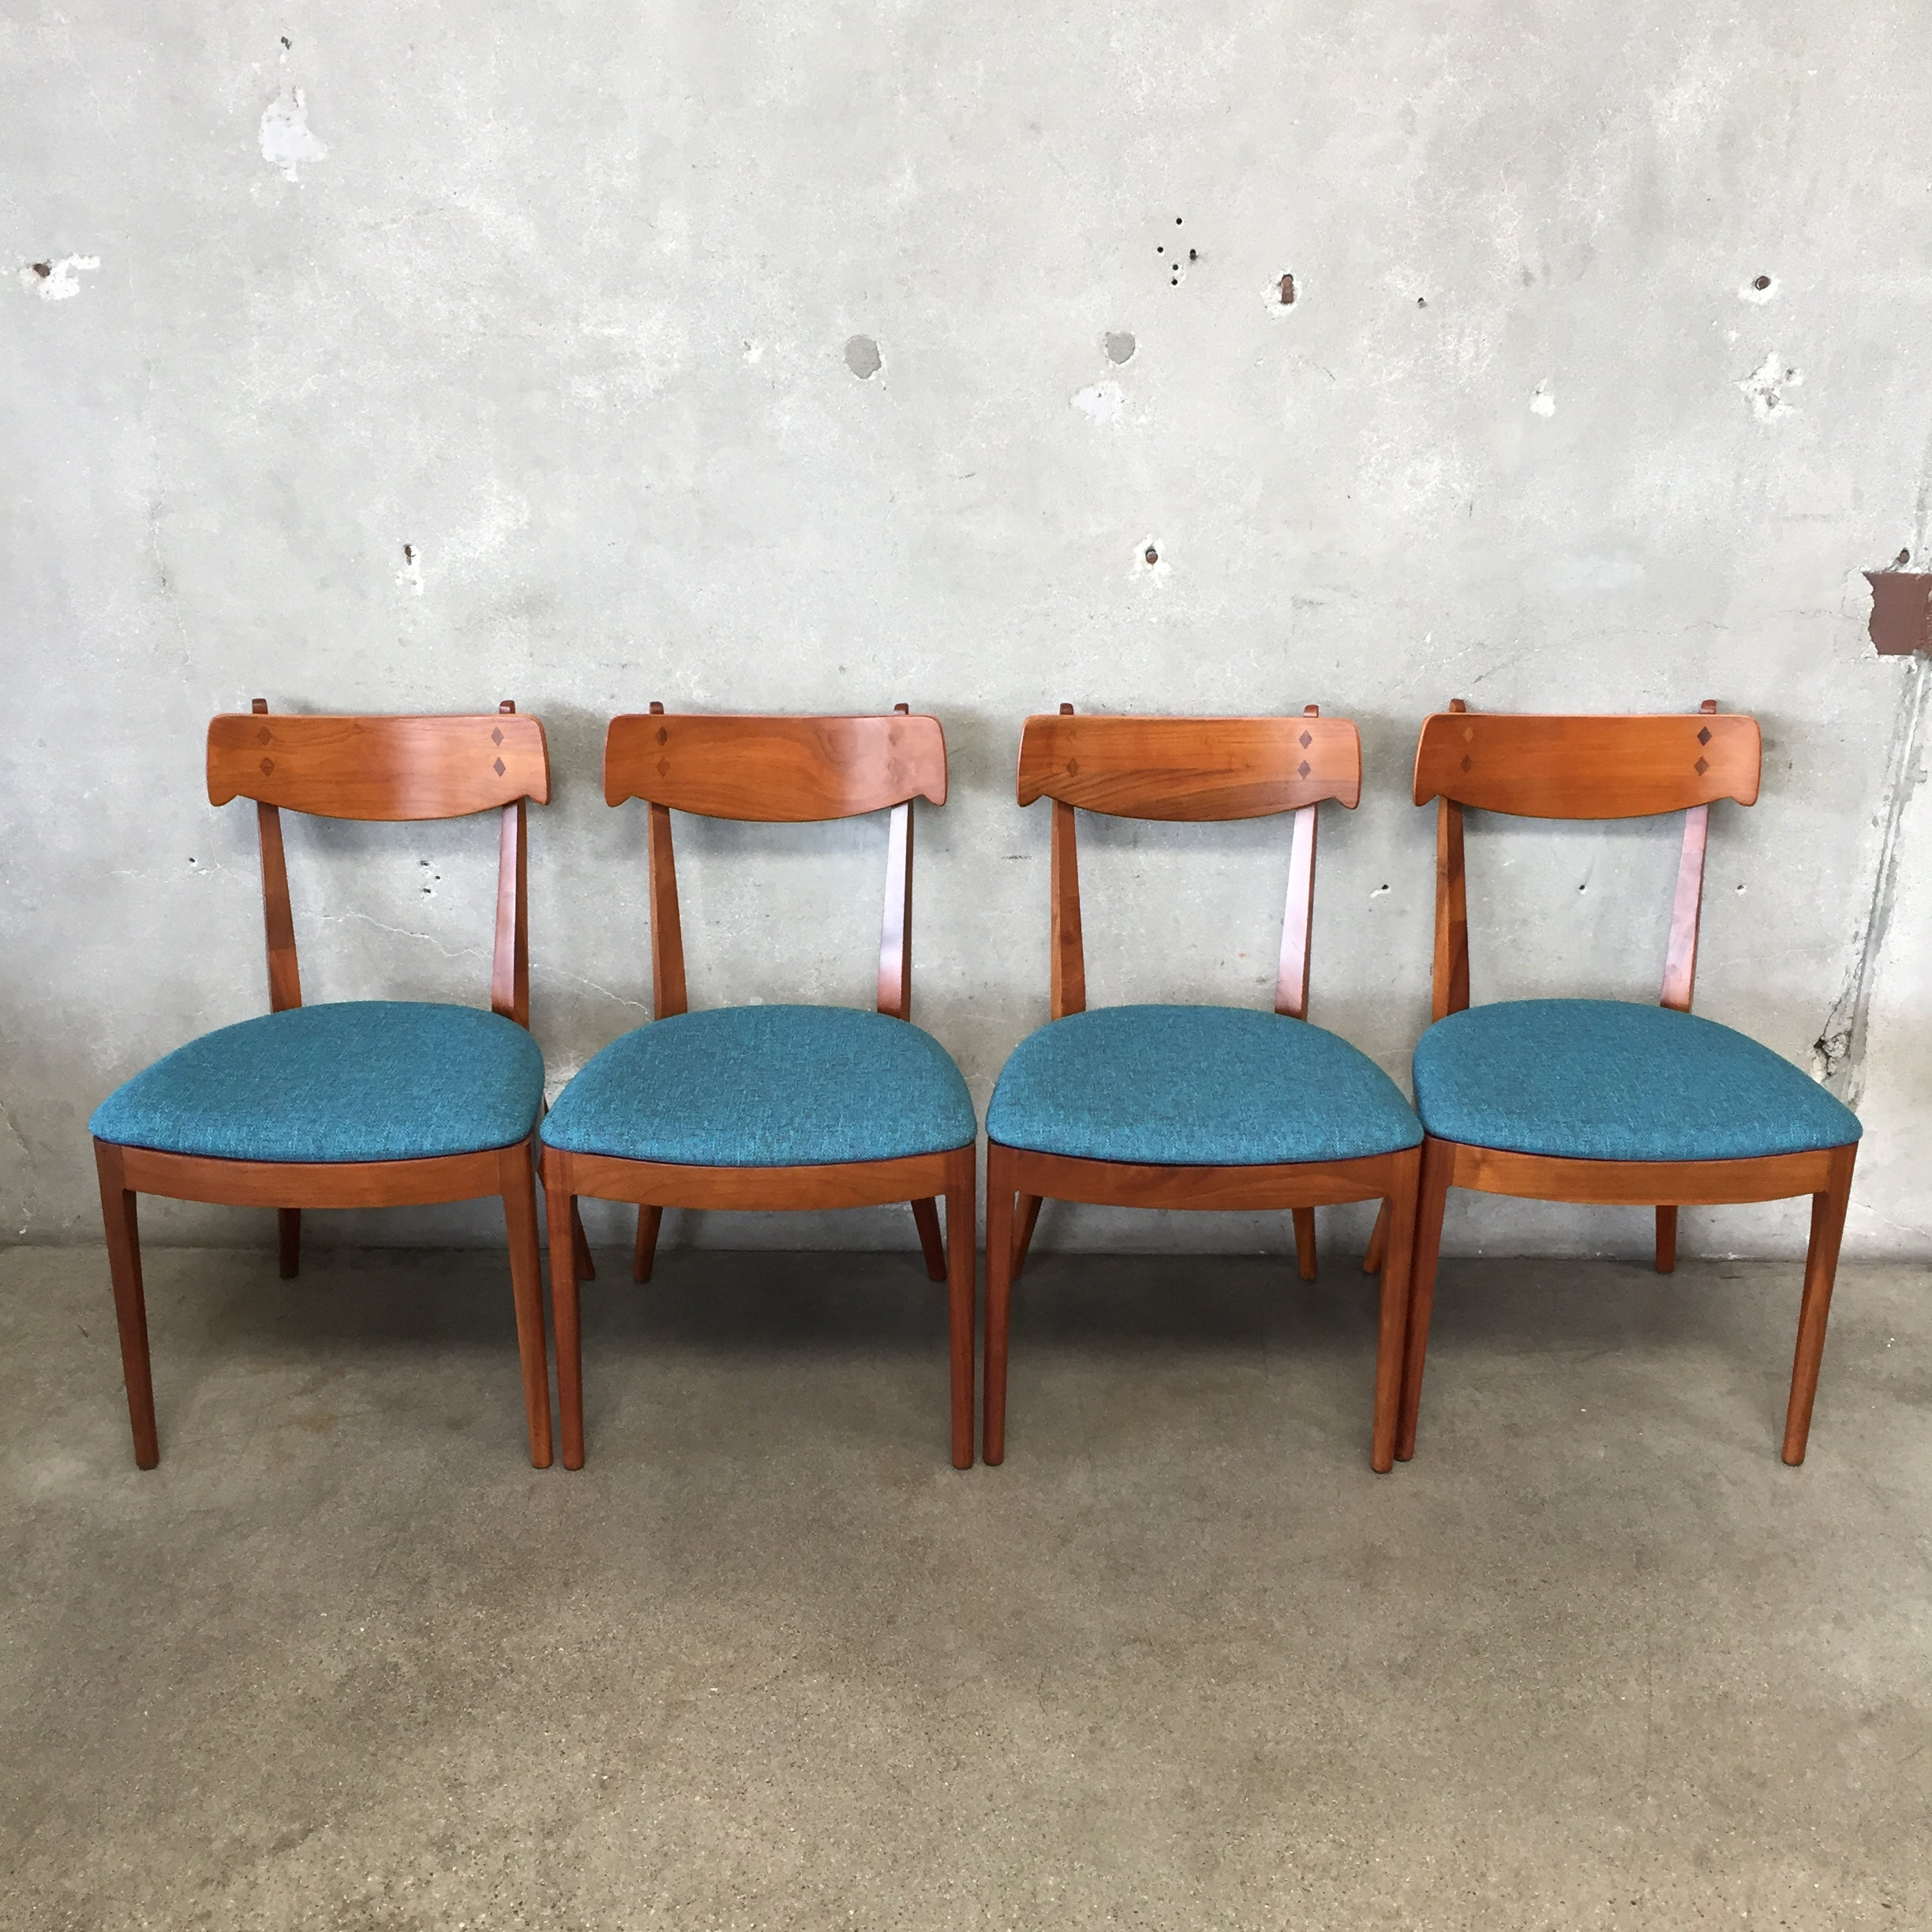 Miraculous Set Of Four Mid Century Modern Drexel Dining Chairs Dailytribune Chair Design For Home Dailytribuneorg